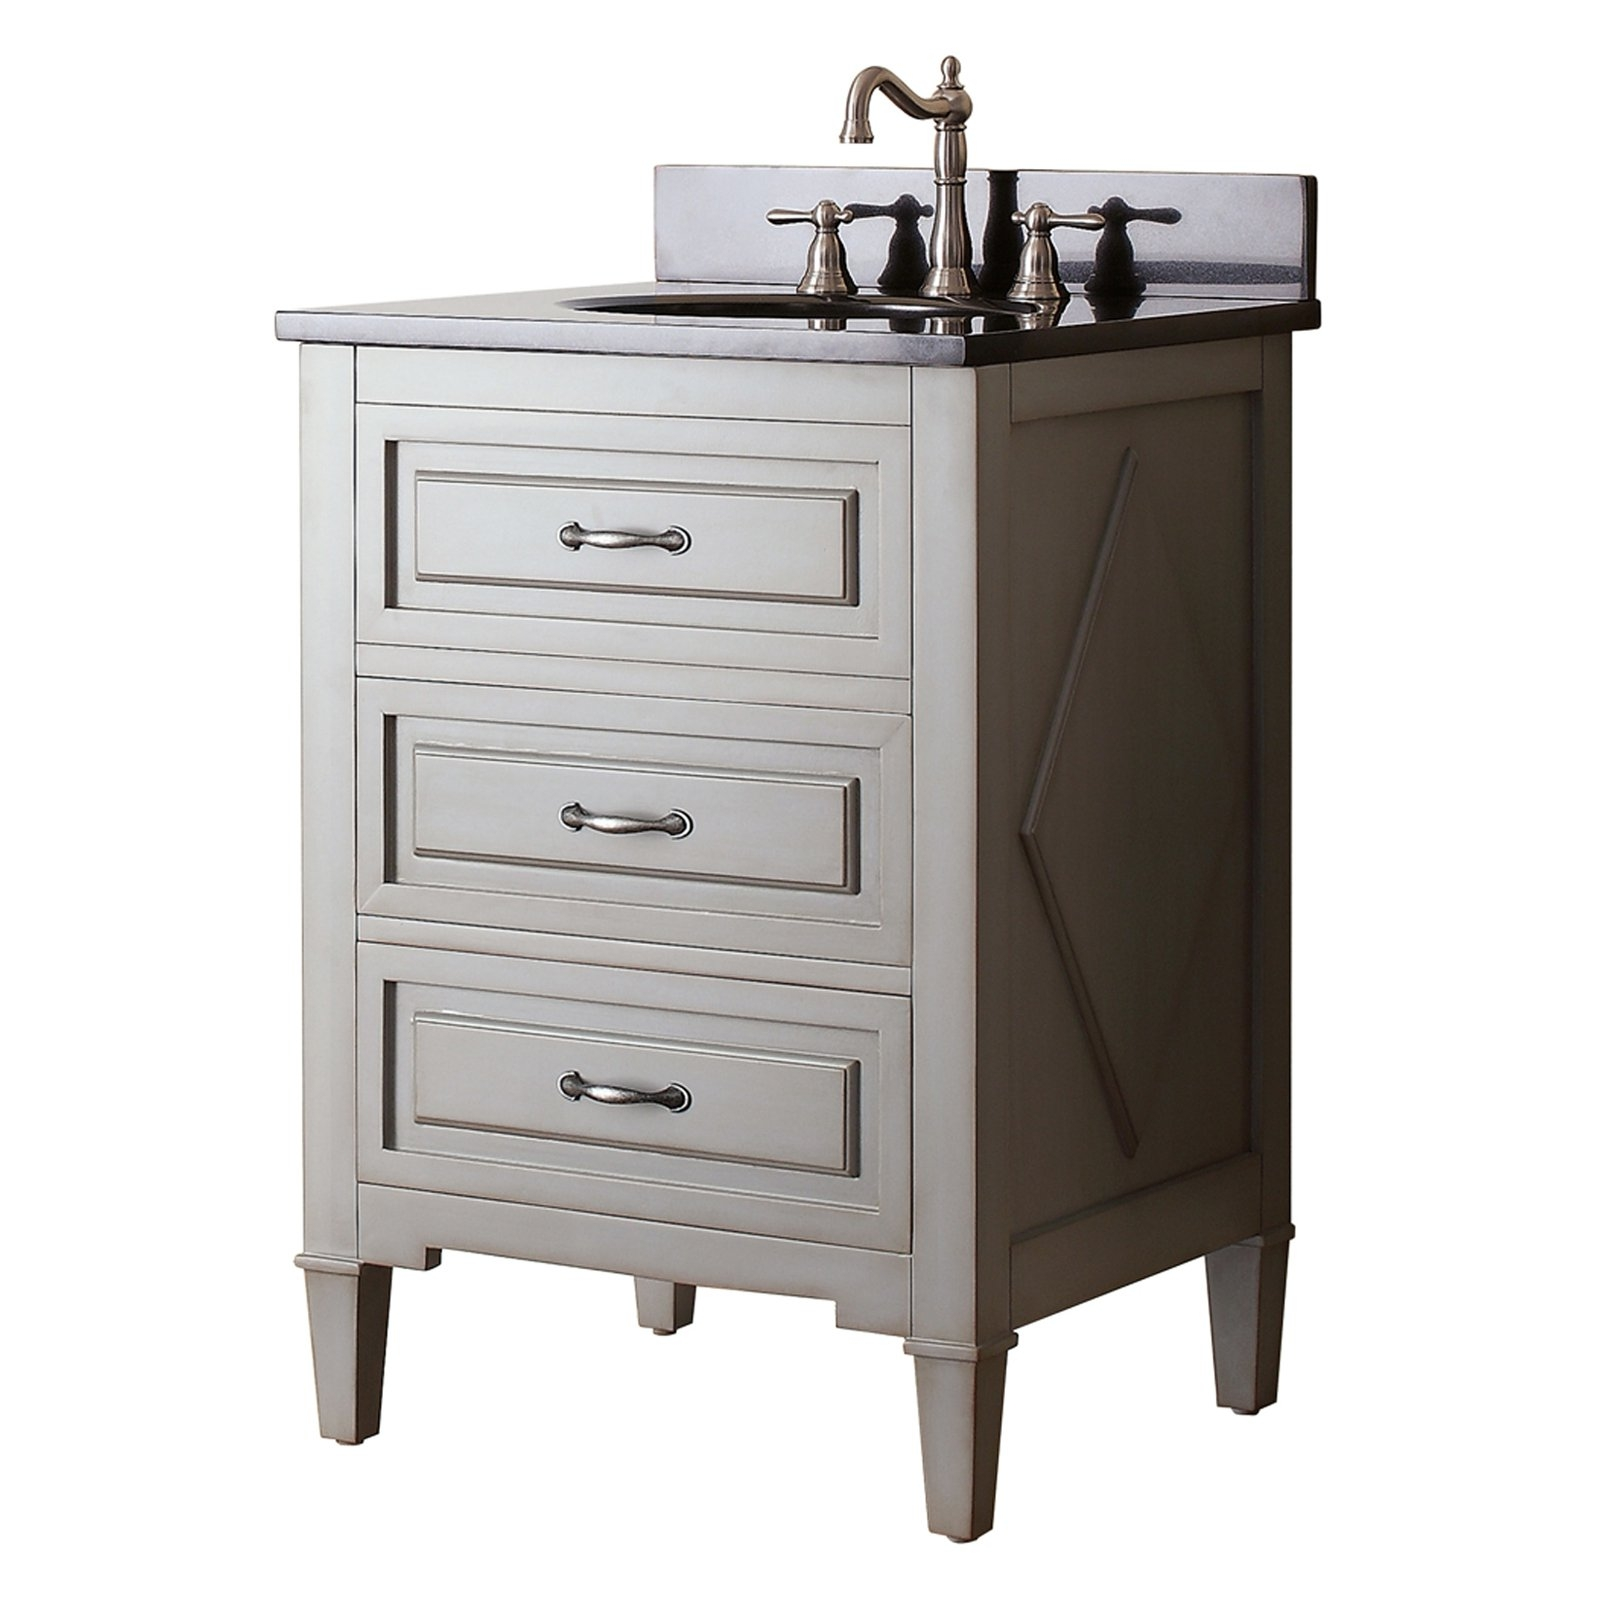 Bathroom Vanity 24 Inches Wide